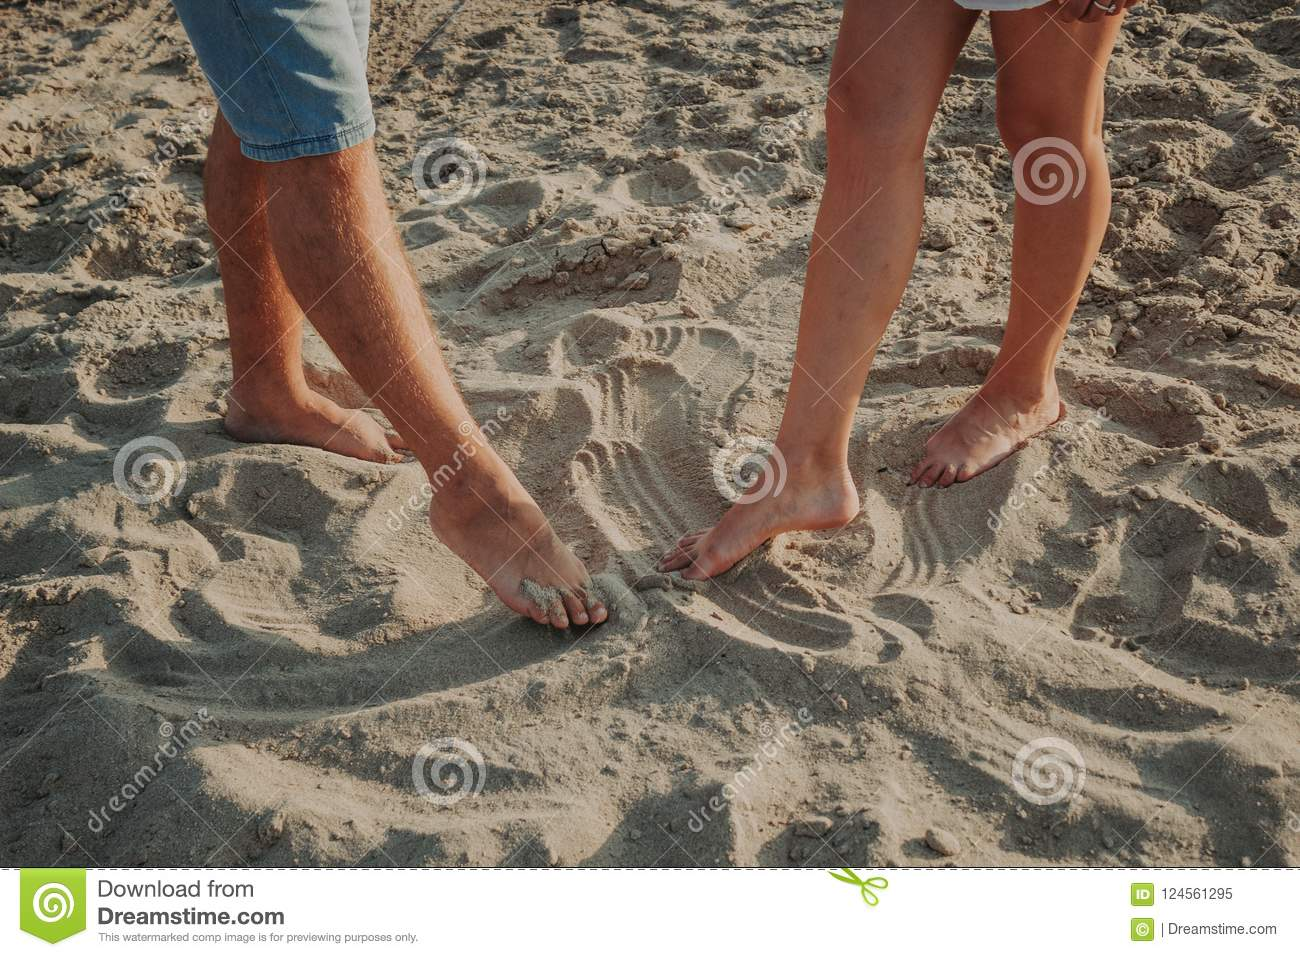 Two pairs of legs draw on the sand figures